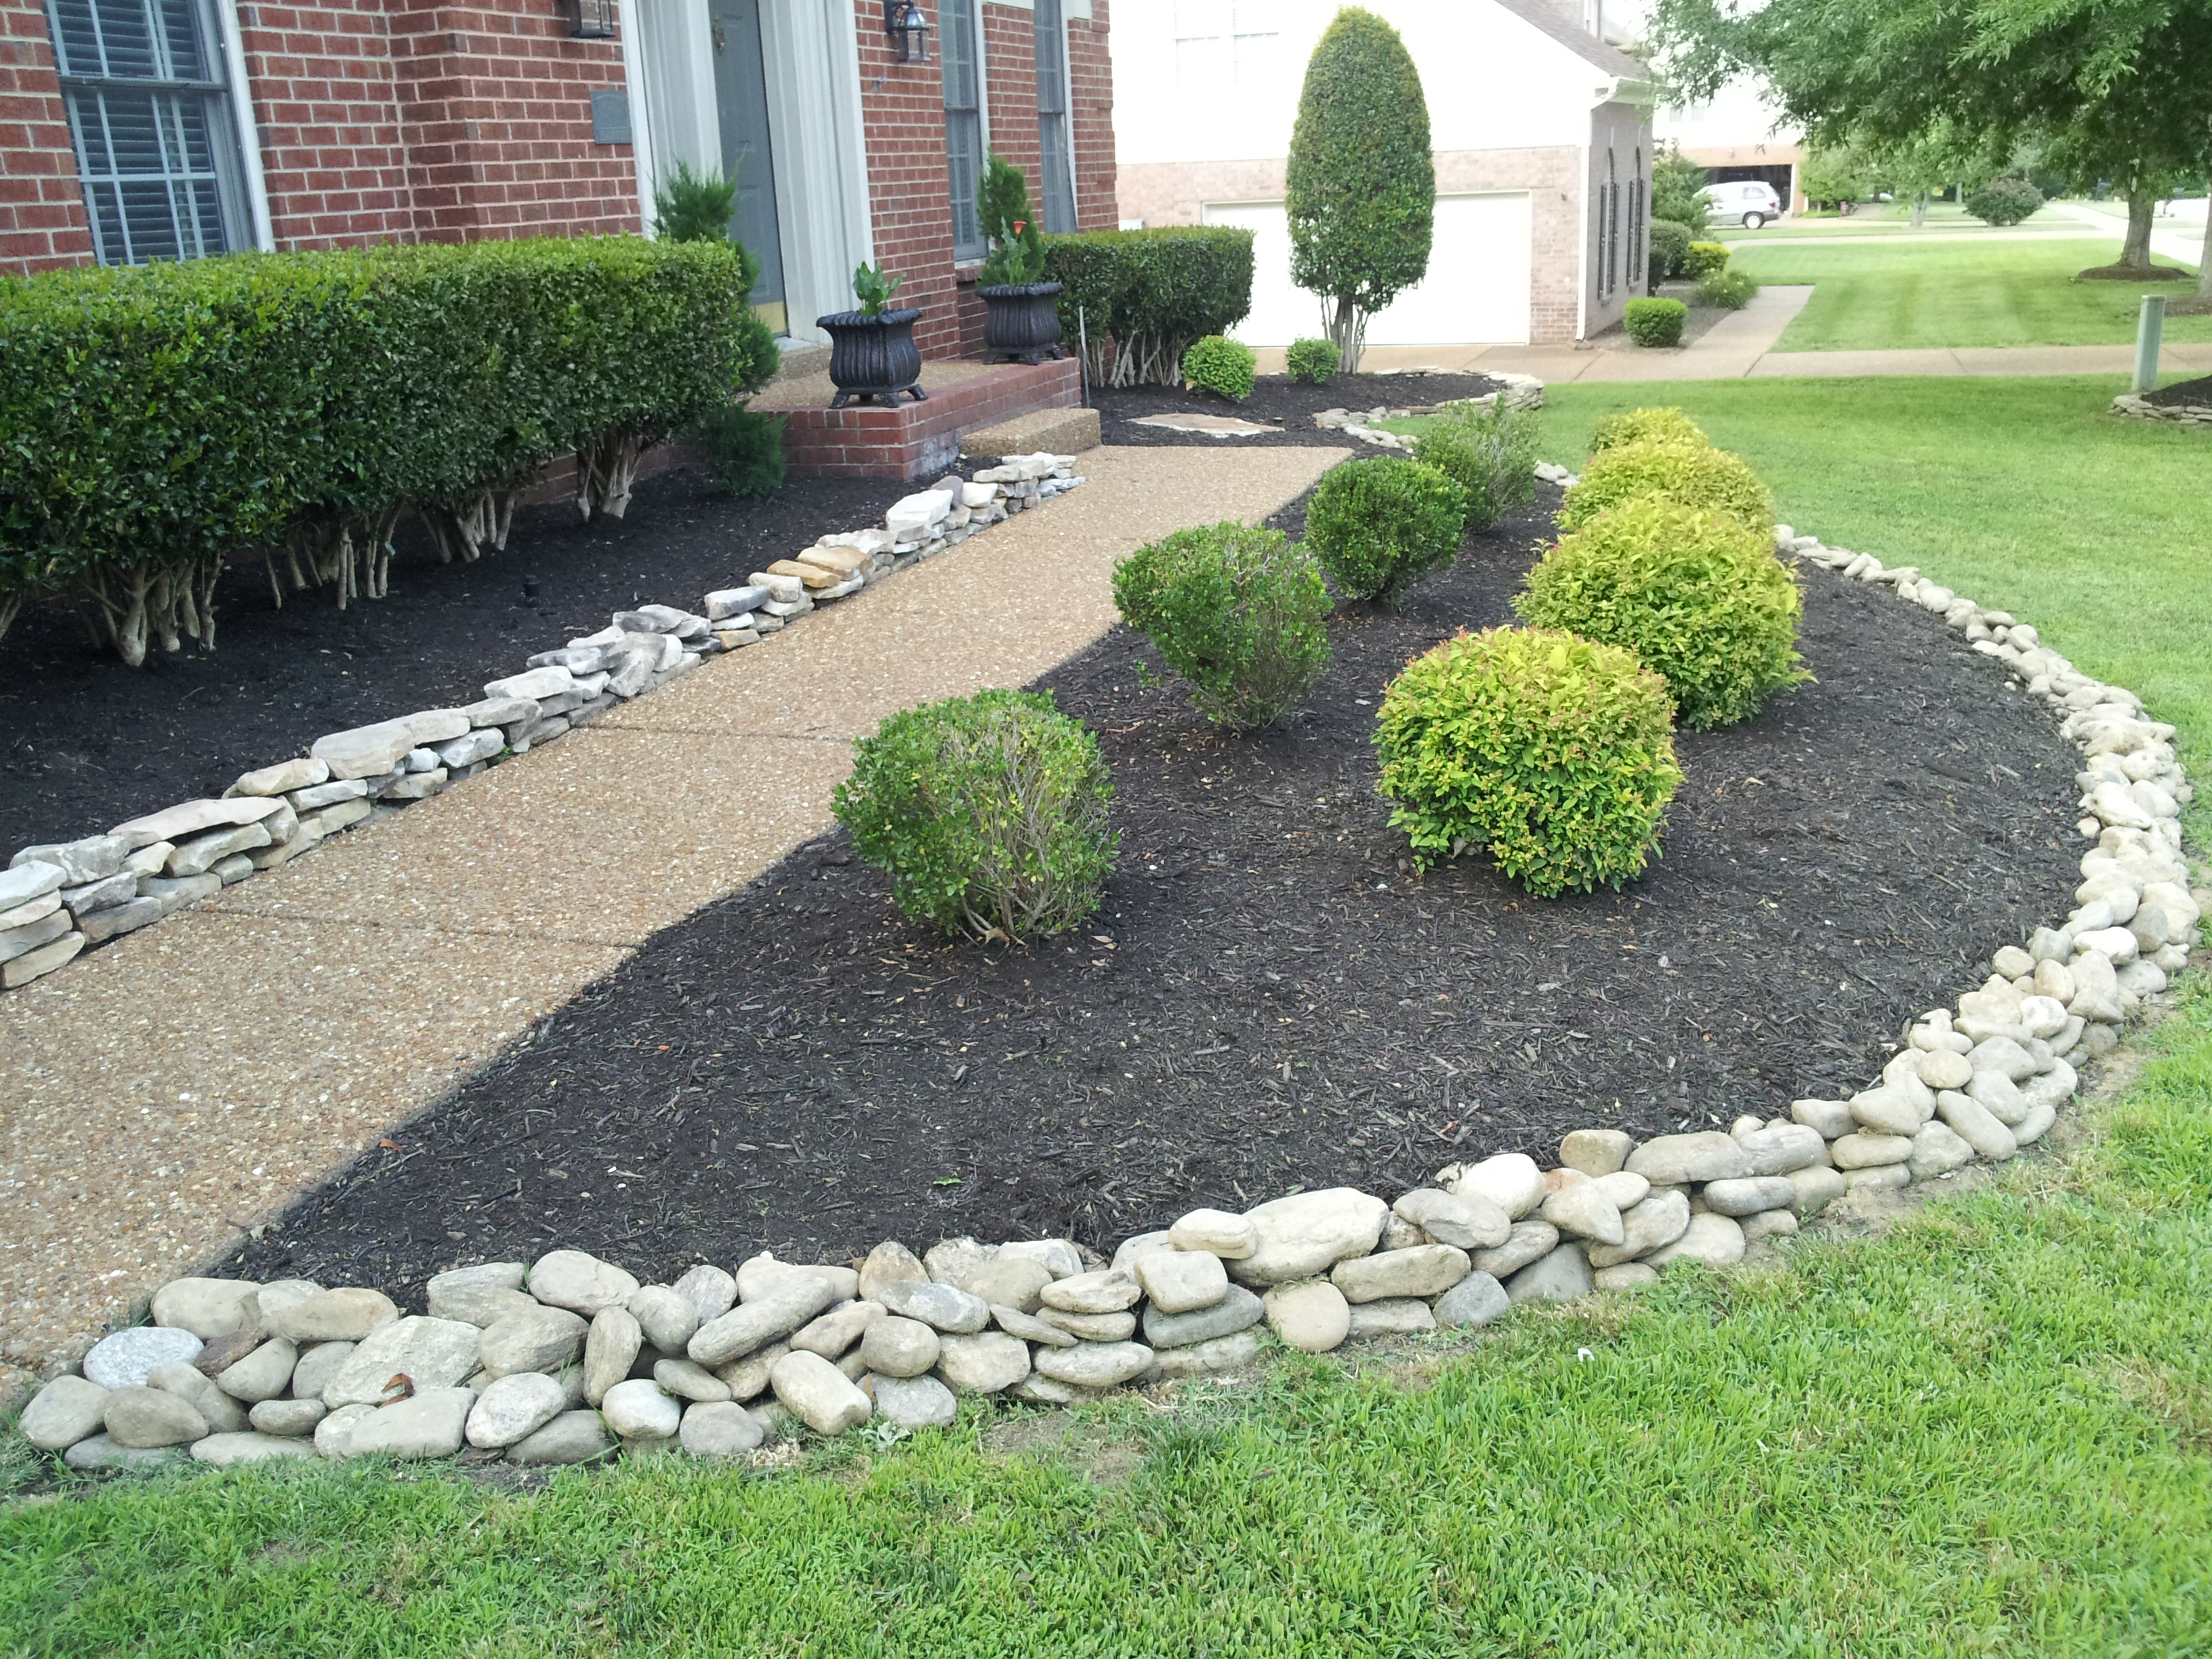 Landscaping With Rocks And Pebbles : Landscaping rock residential archives franklin stone